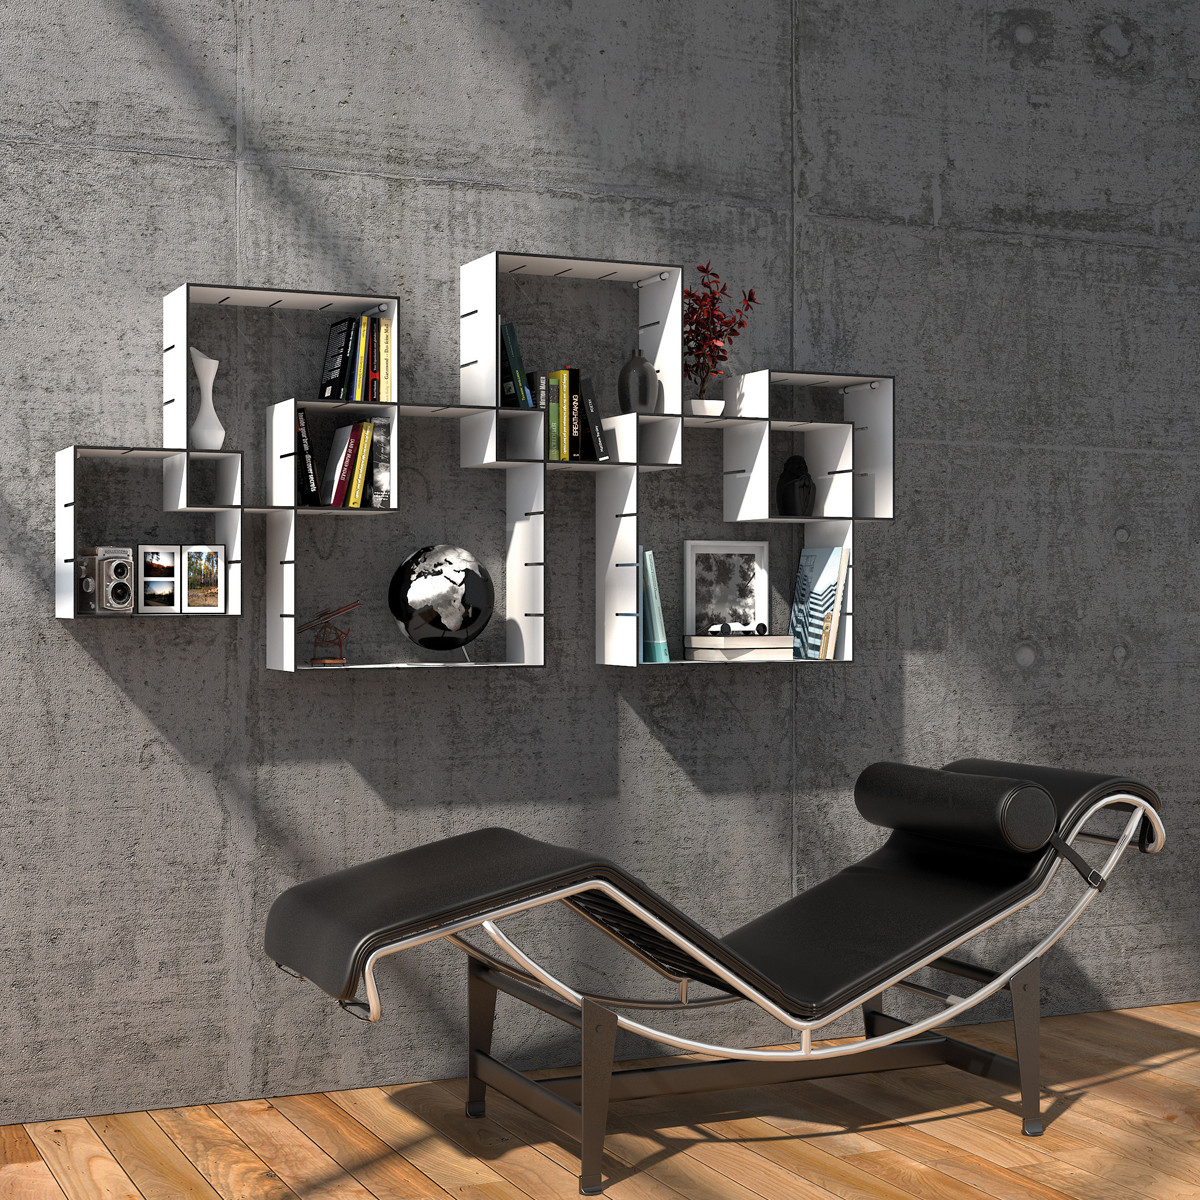 m ller m belwerkst tten konnex wandregalsystem casa de. Black Bedroom Furniture Sets. Home Design Ideas